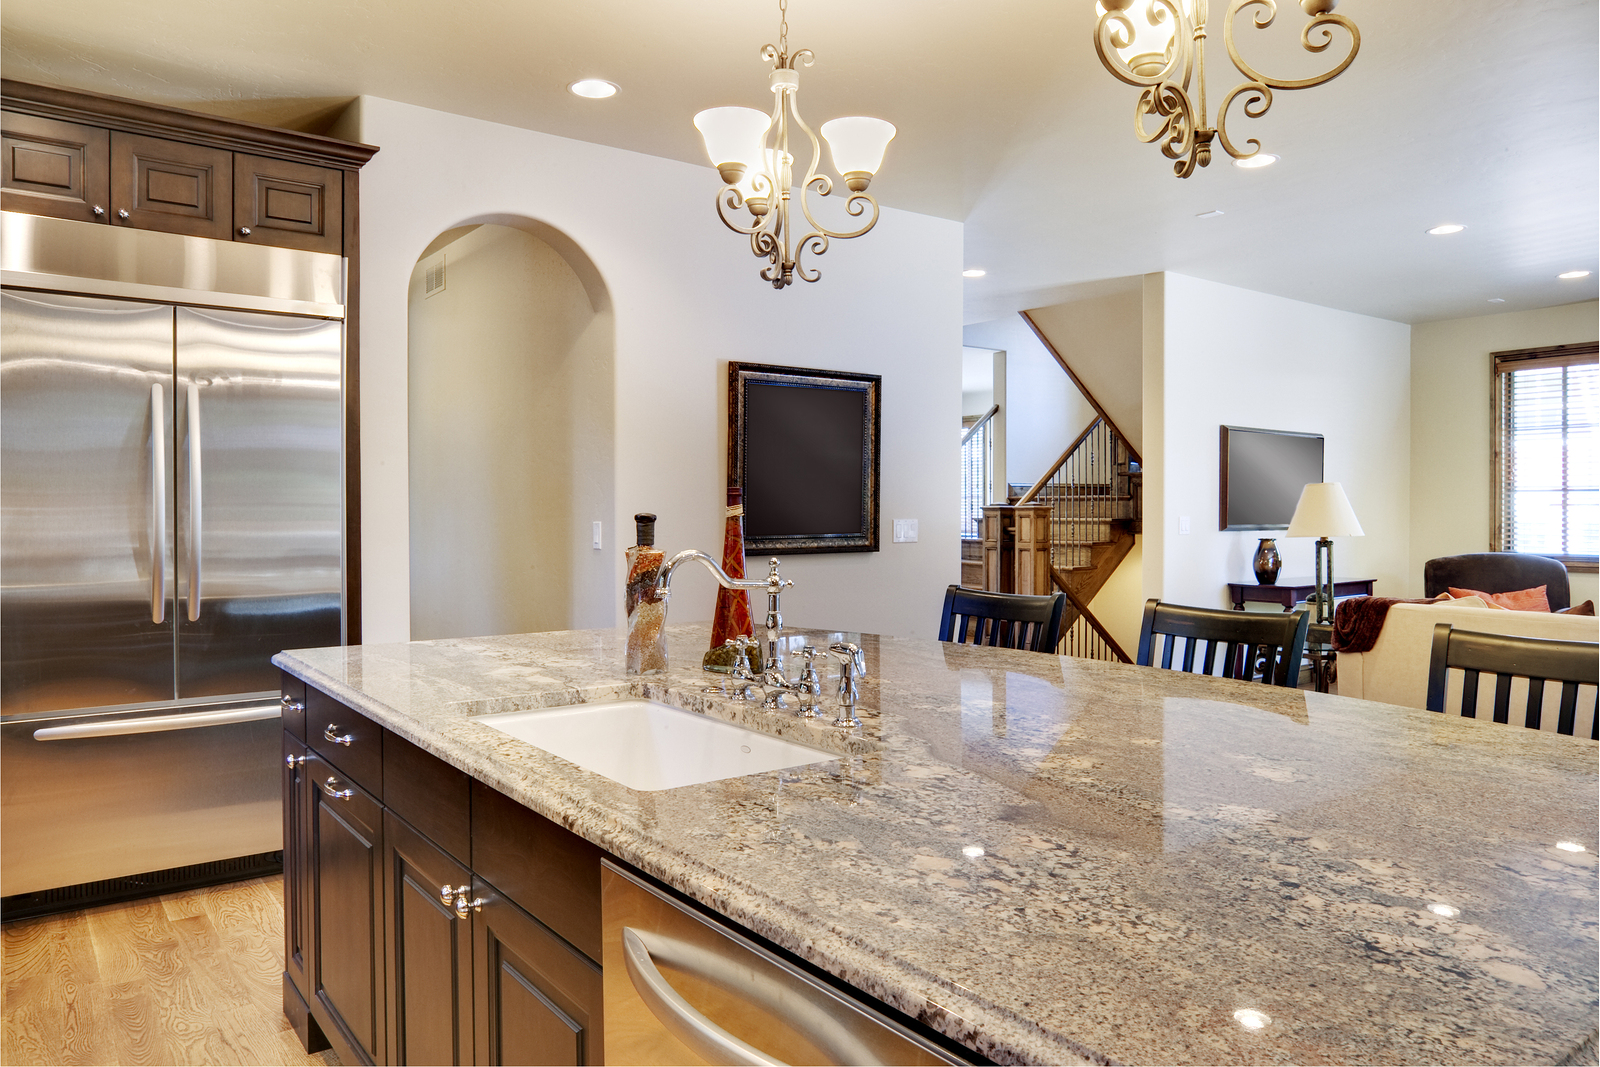 Kitchen with view looking over center island into great room